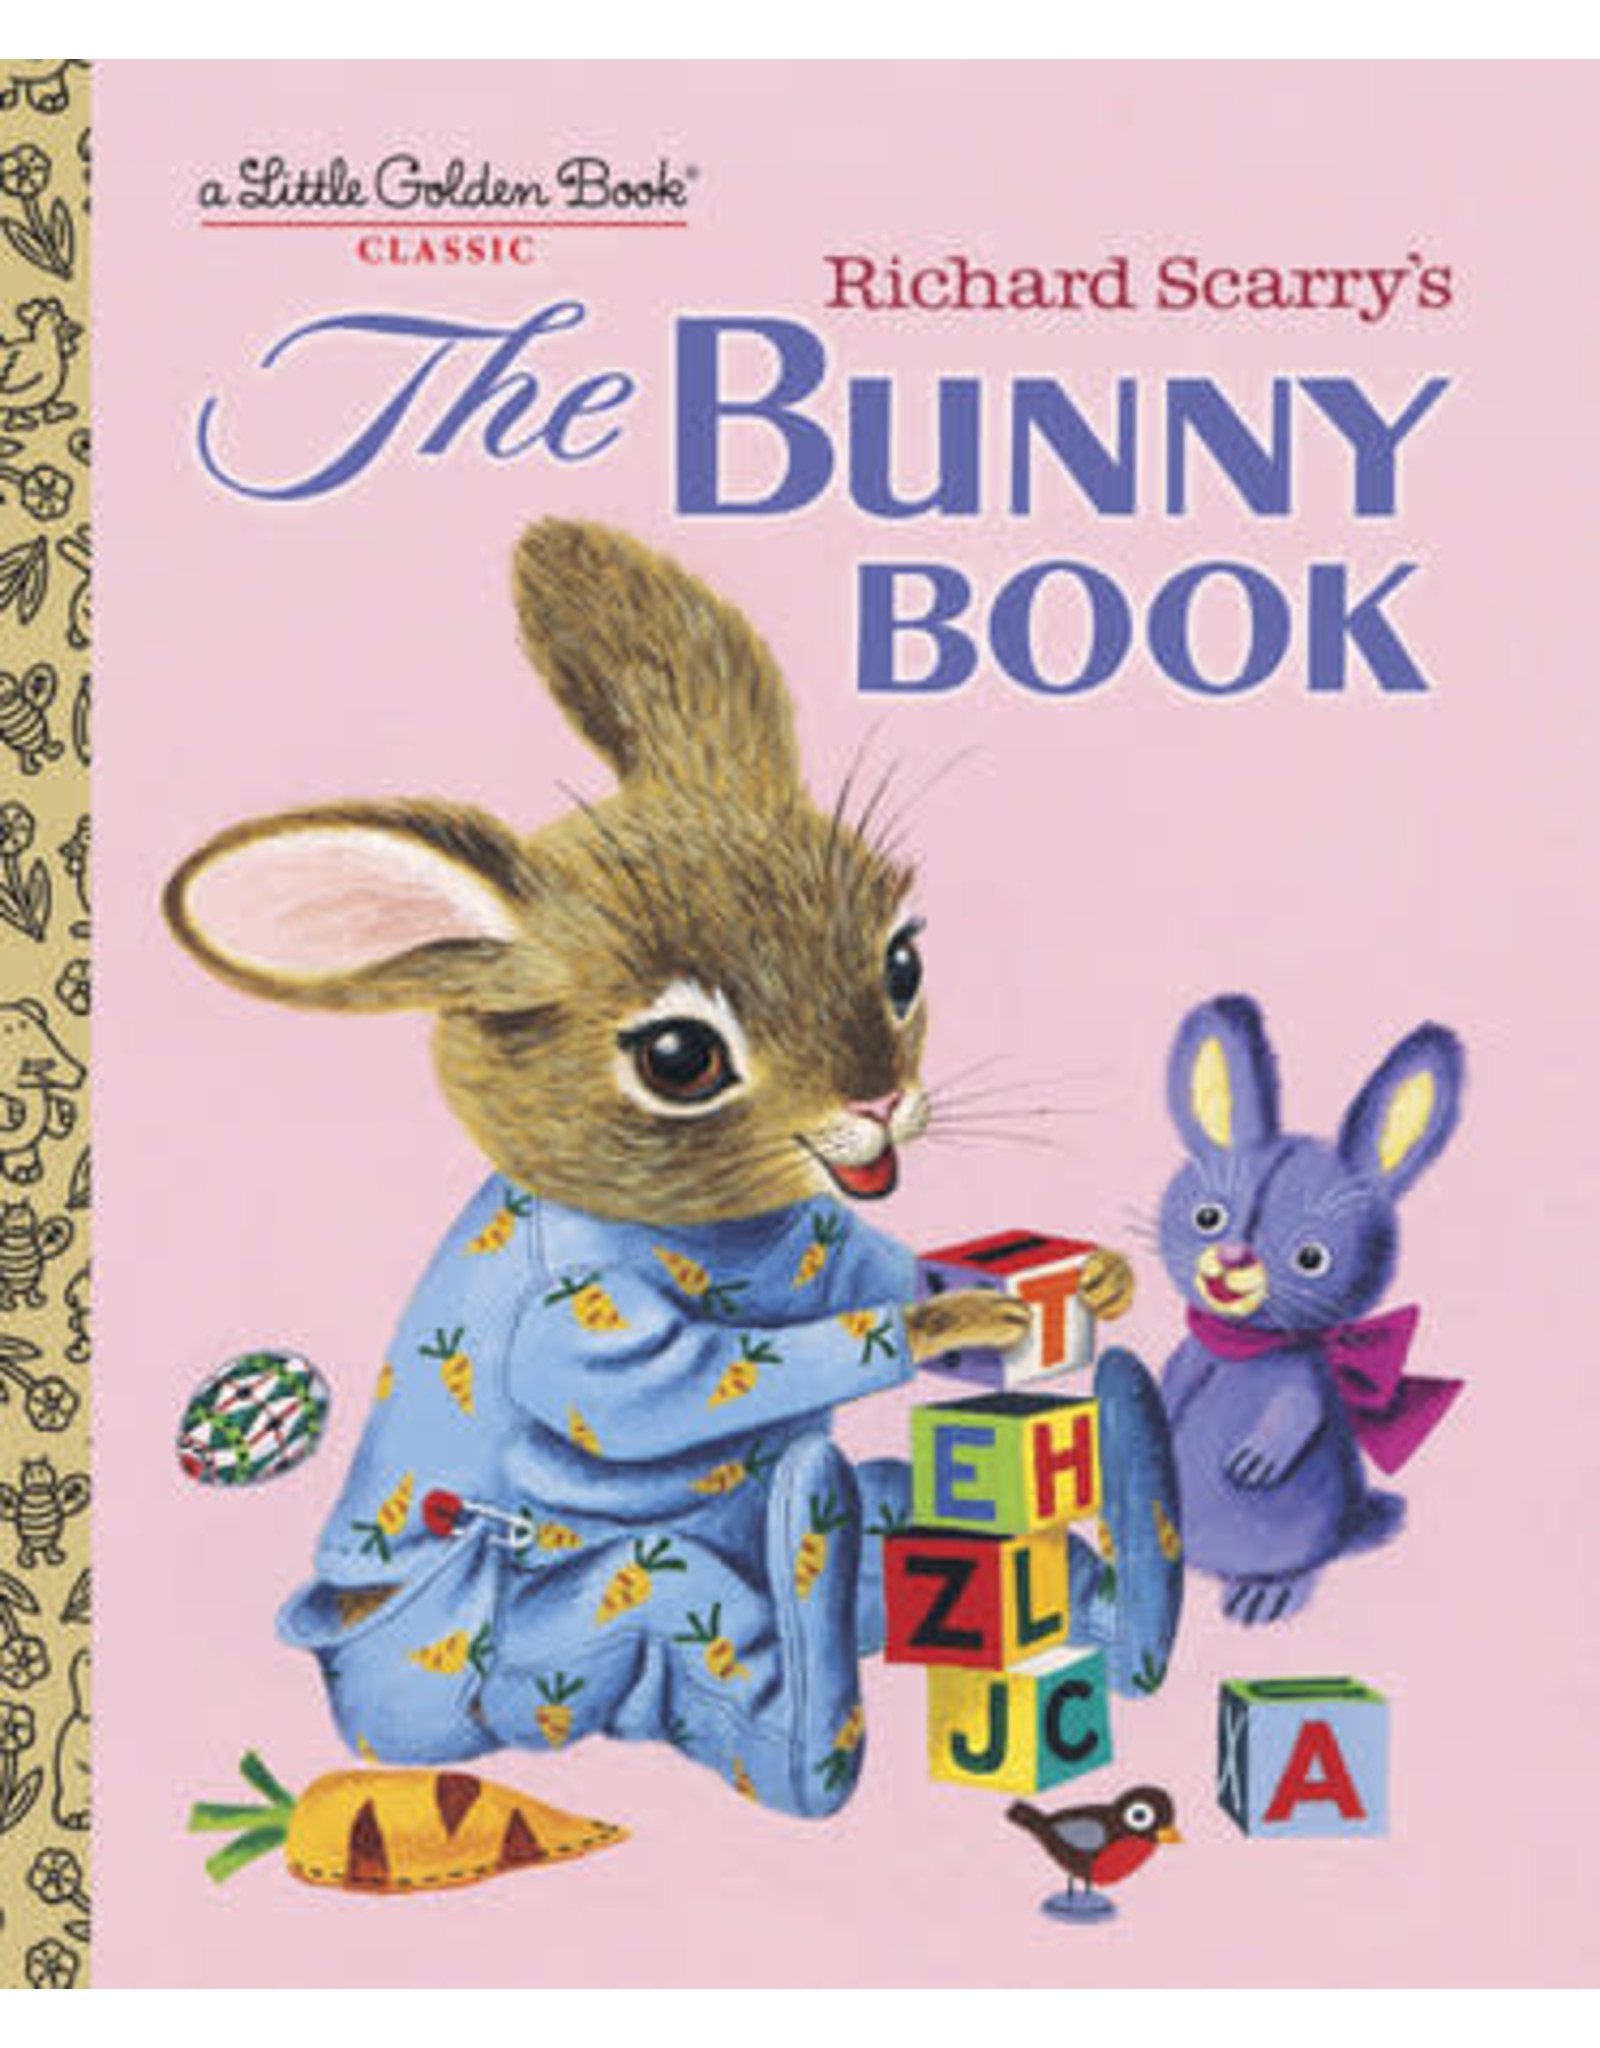 Golden Richard Scarry's The Bunny Book